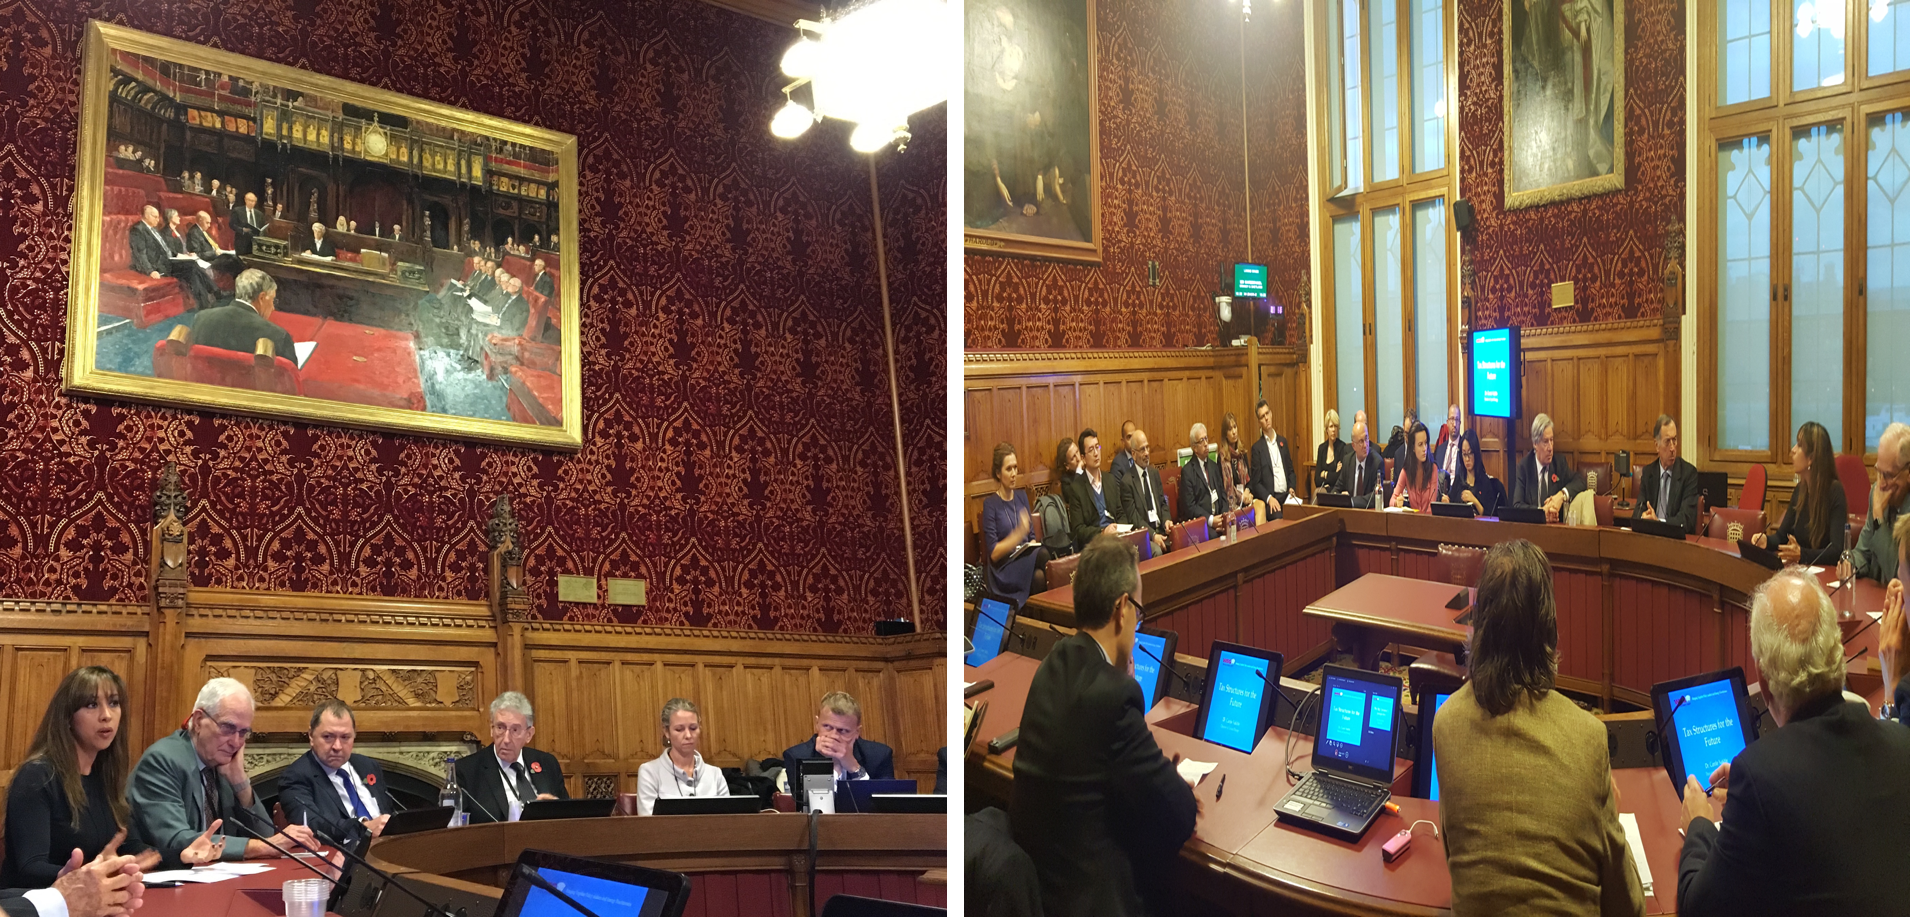 Dr Carole Nakhle and Dr Gavin Graham speaking at the North Sea Expert Review in the House of Lords. Lord Howell led the discussion.